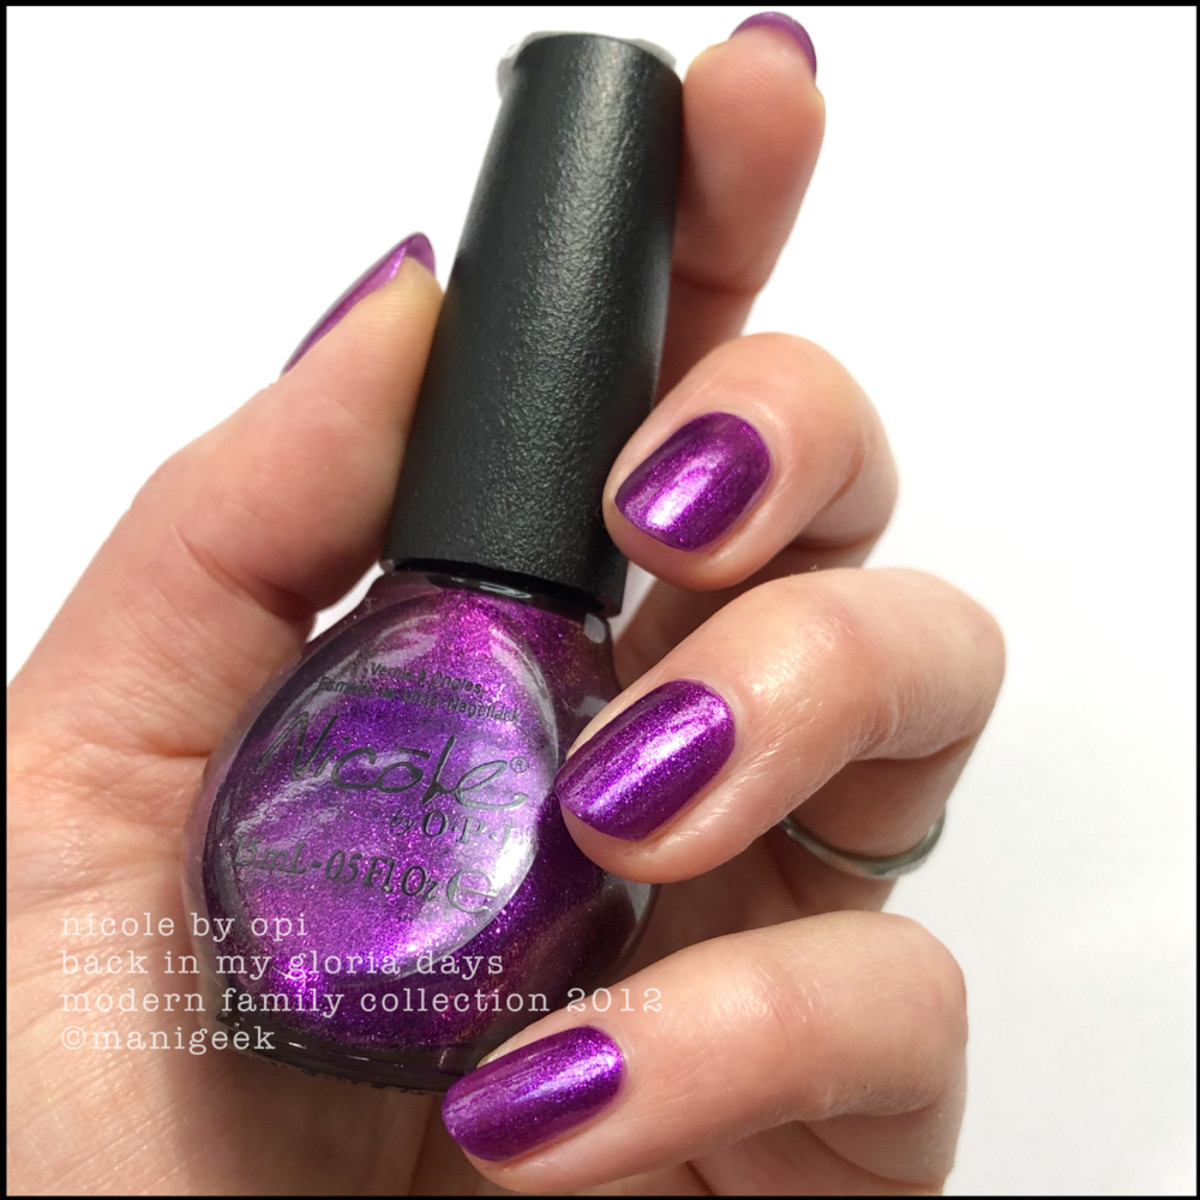 Nicole by OPI Back in my Gloria Days - Modern Family Collection 2012